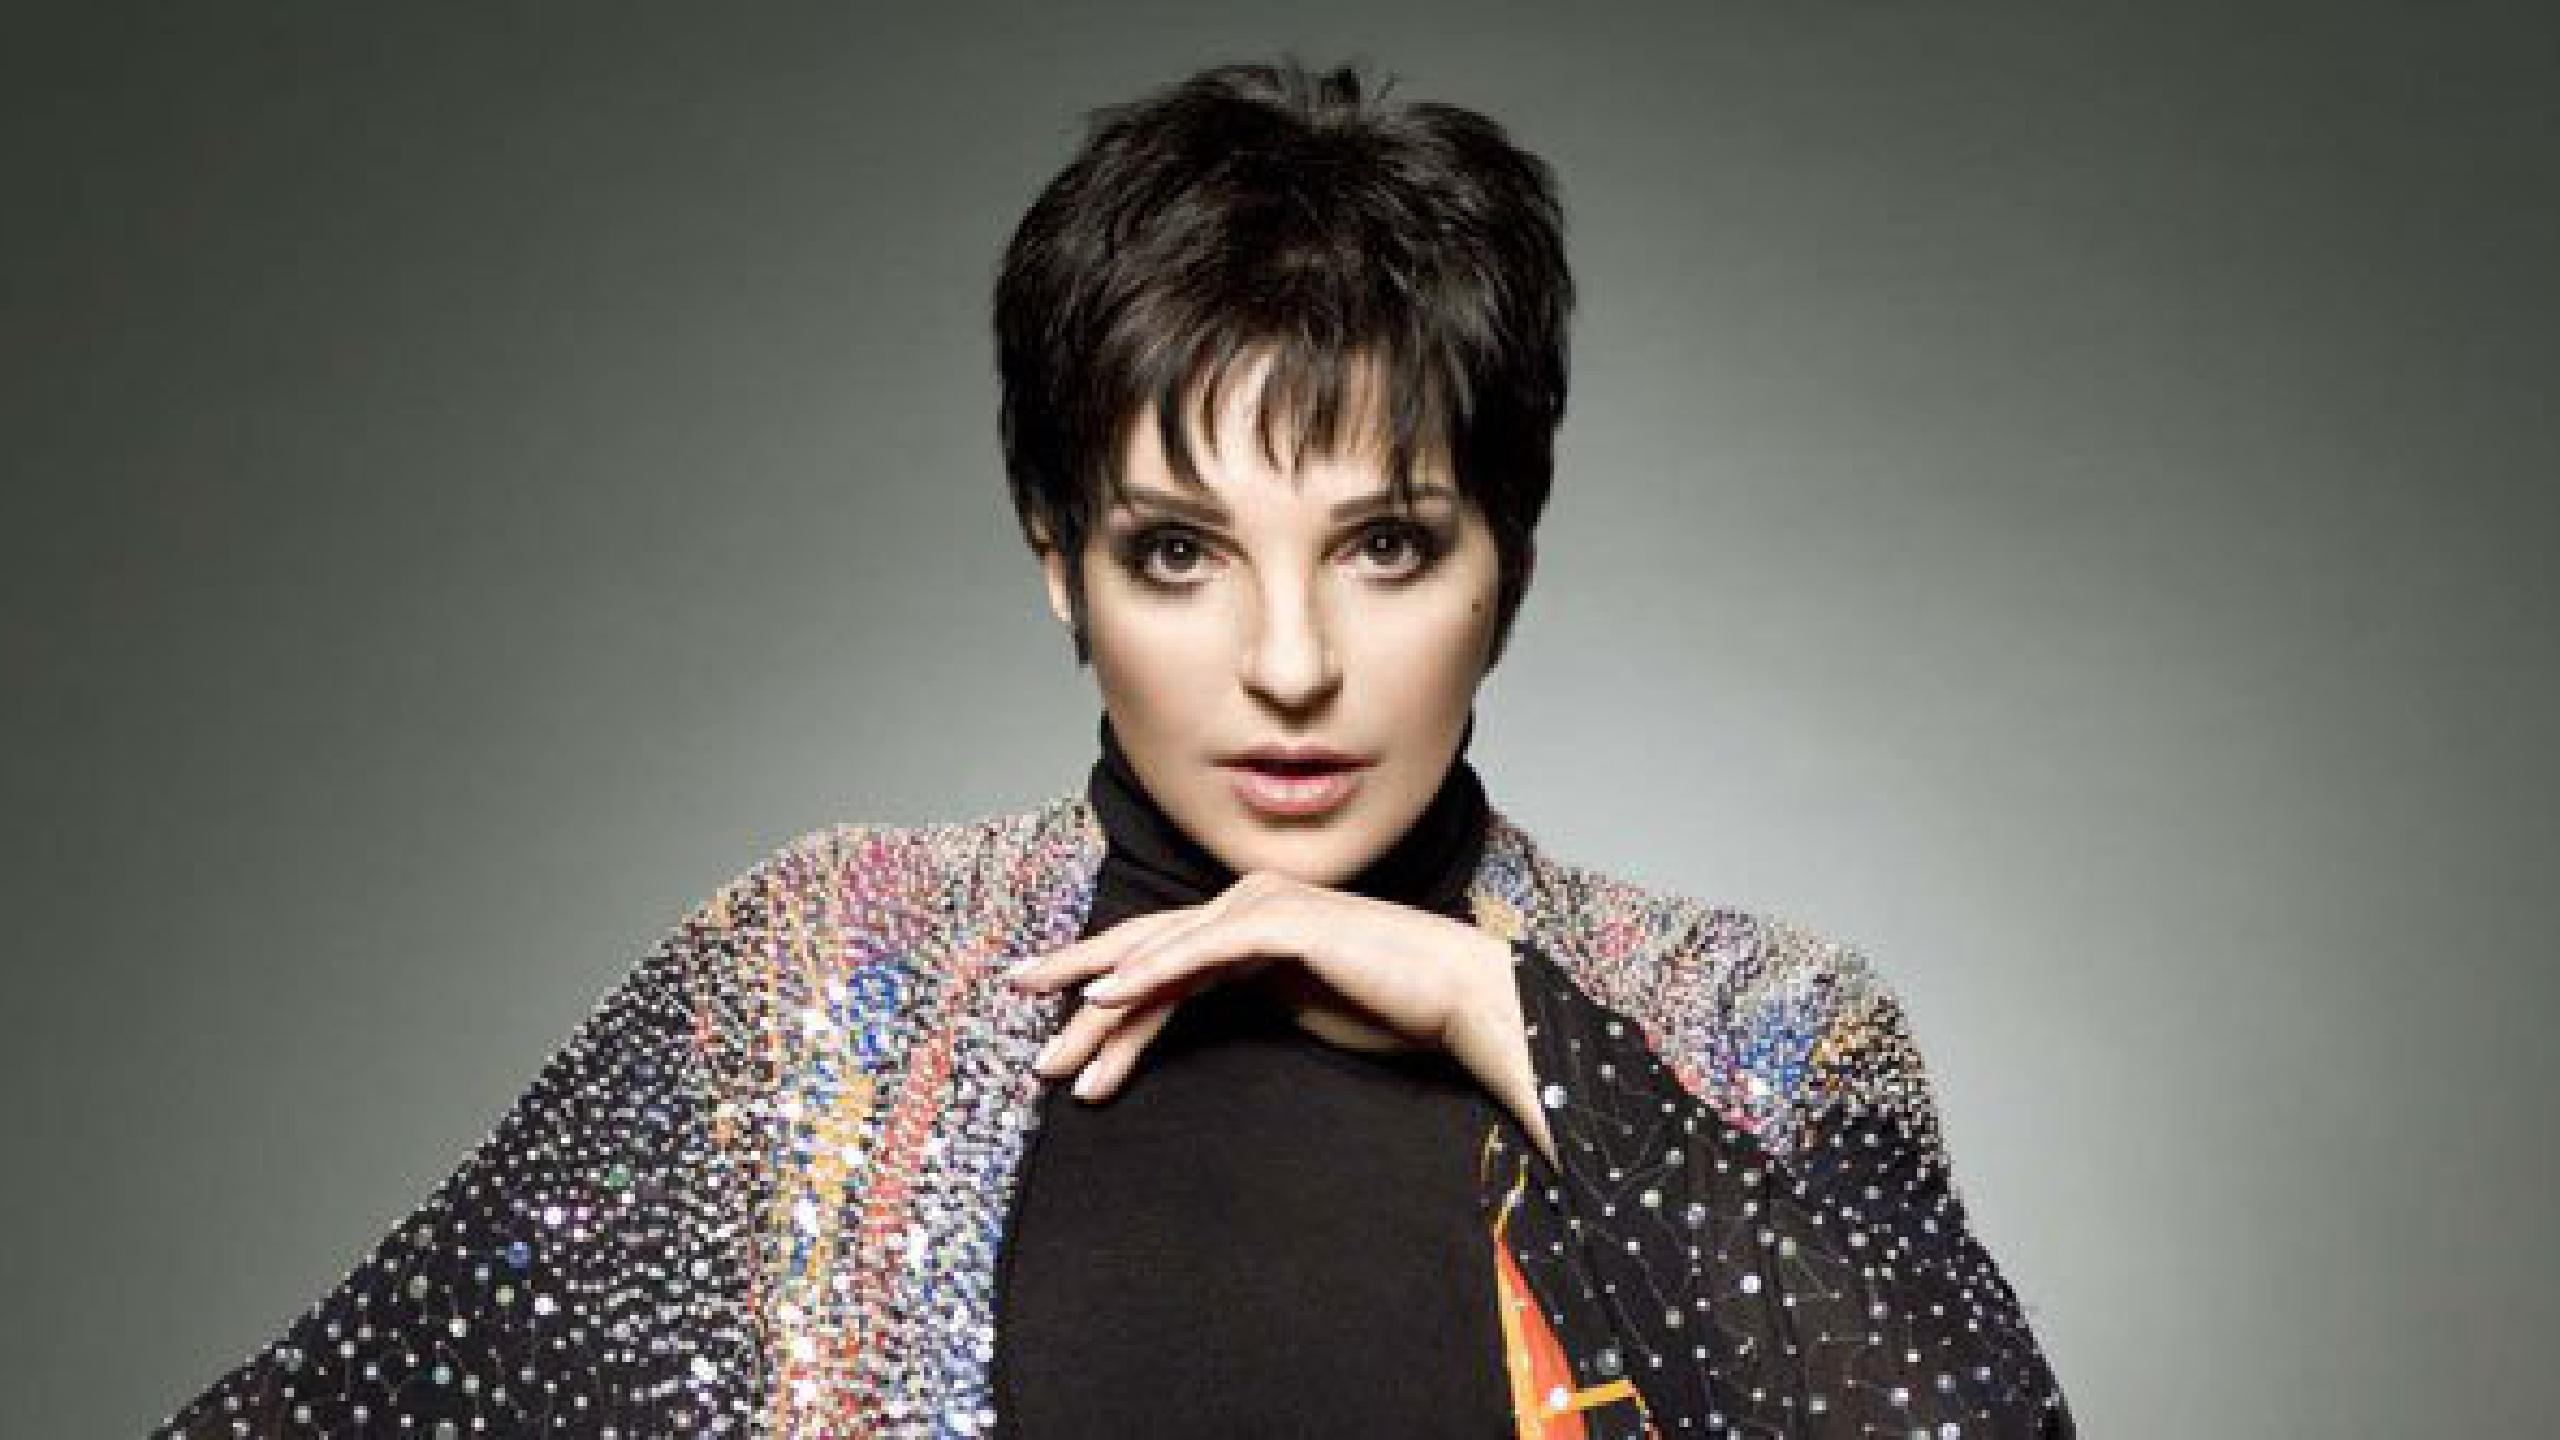 Liza Minnelli nudes (56 foto and video), Ass, Cleavage, Boobs, lingerie 2018